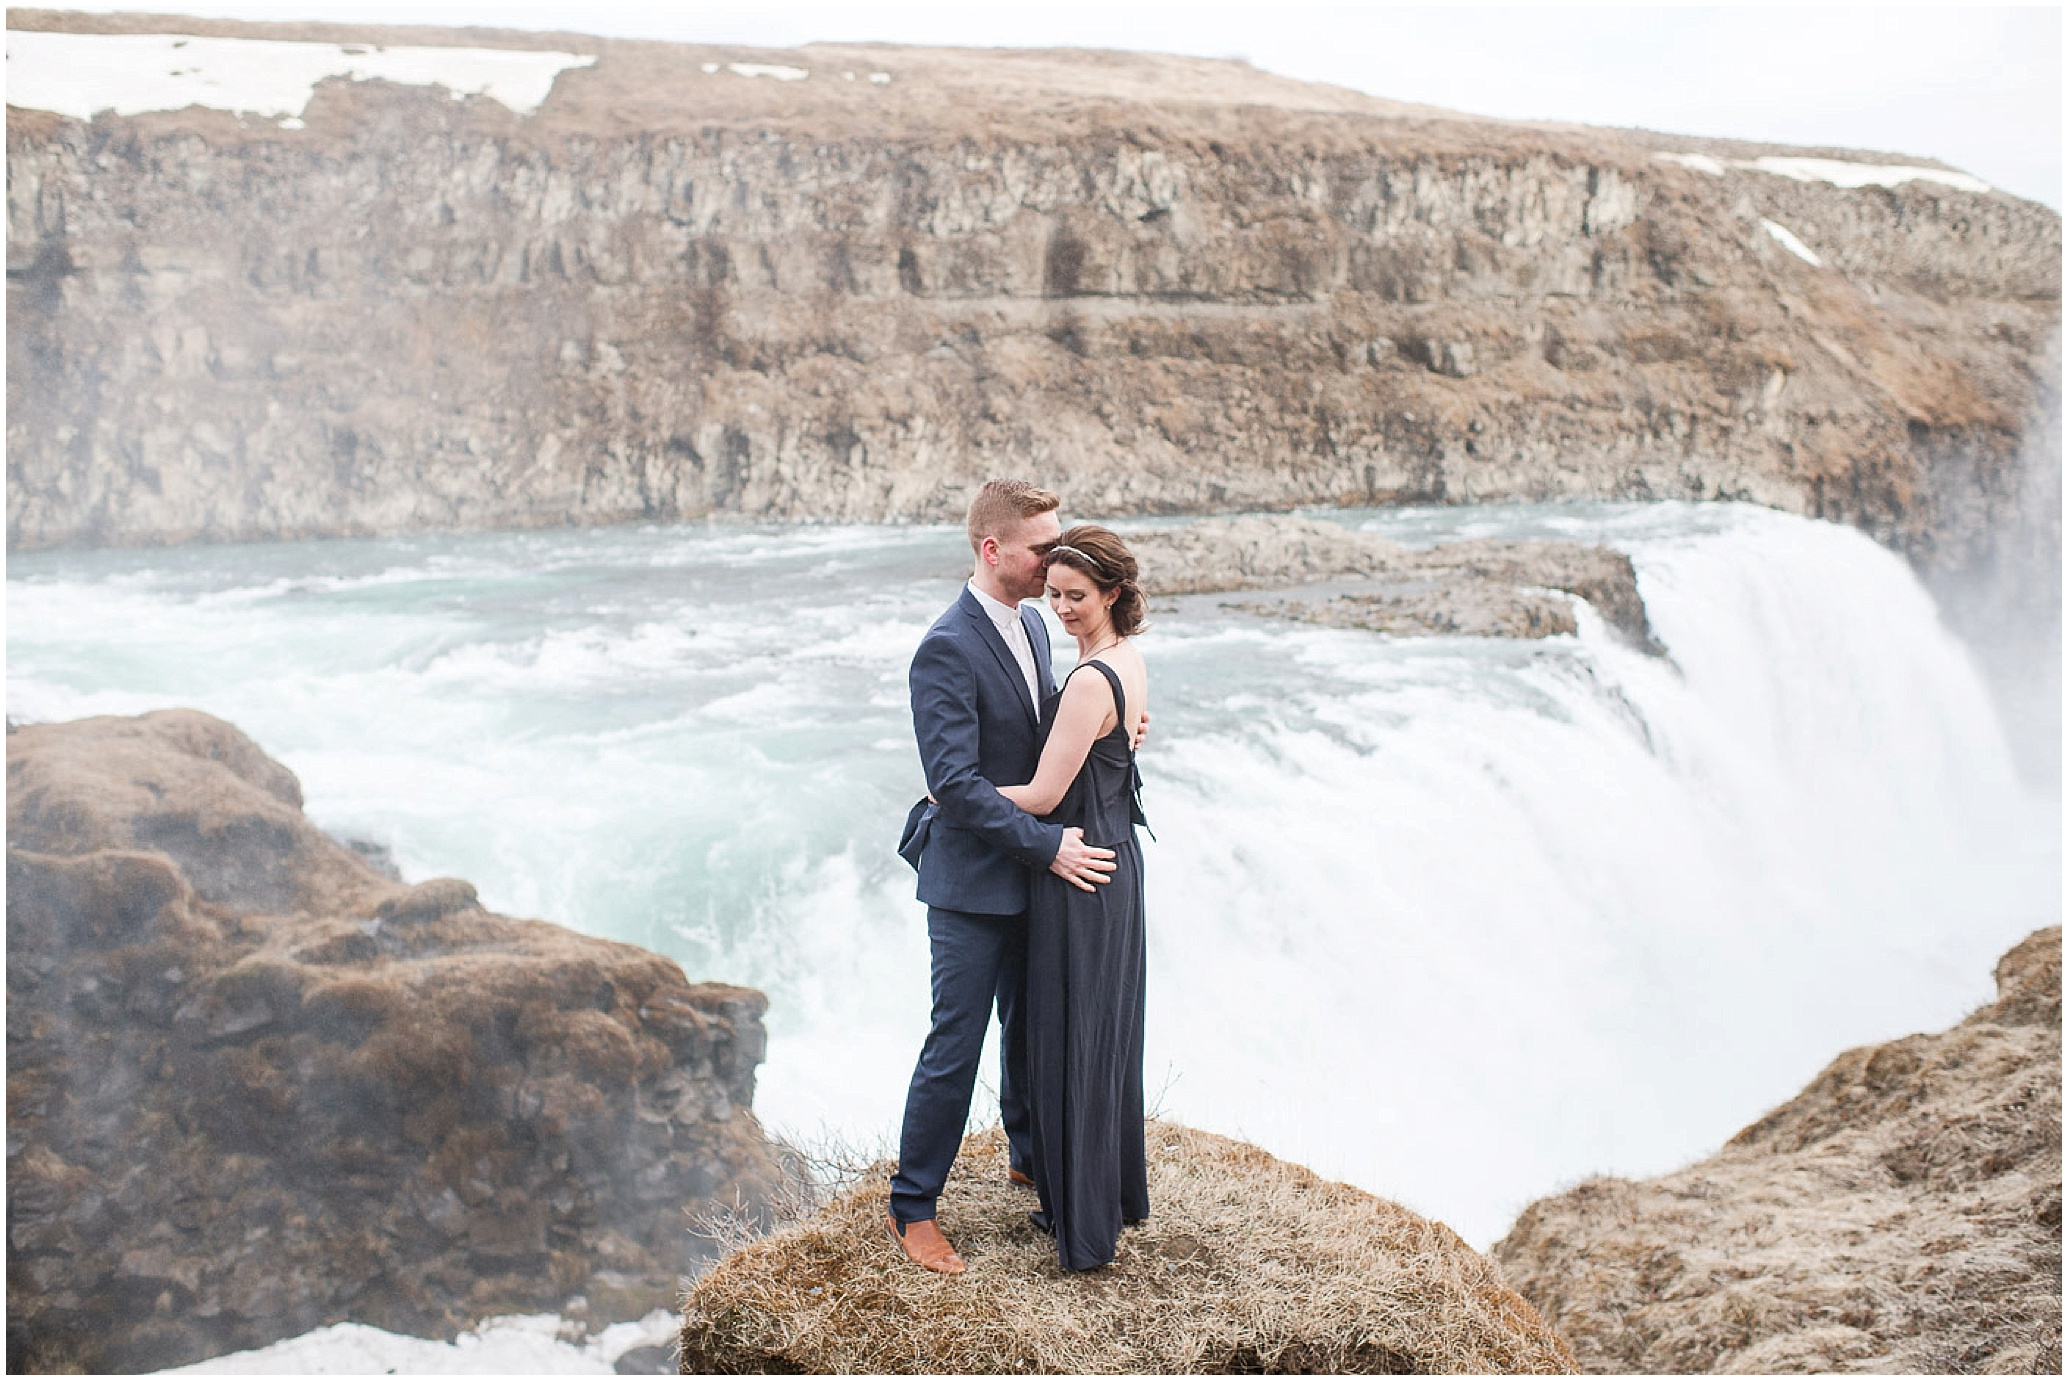 Hannah Leigh Photography Iceland Elopement Photographer_0123.jpg